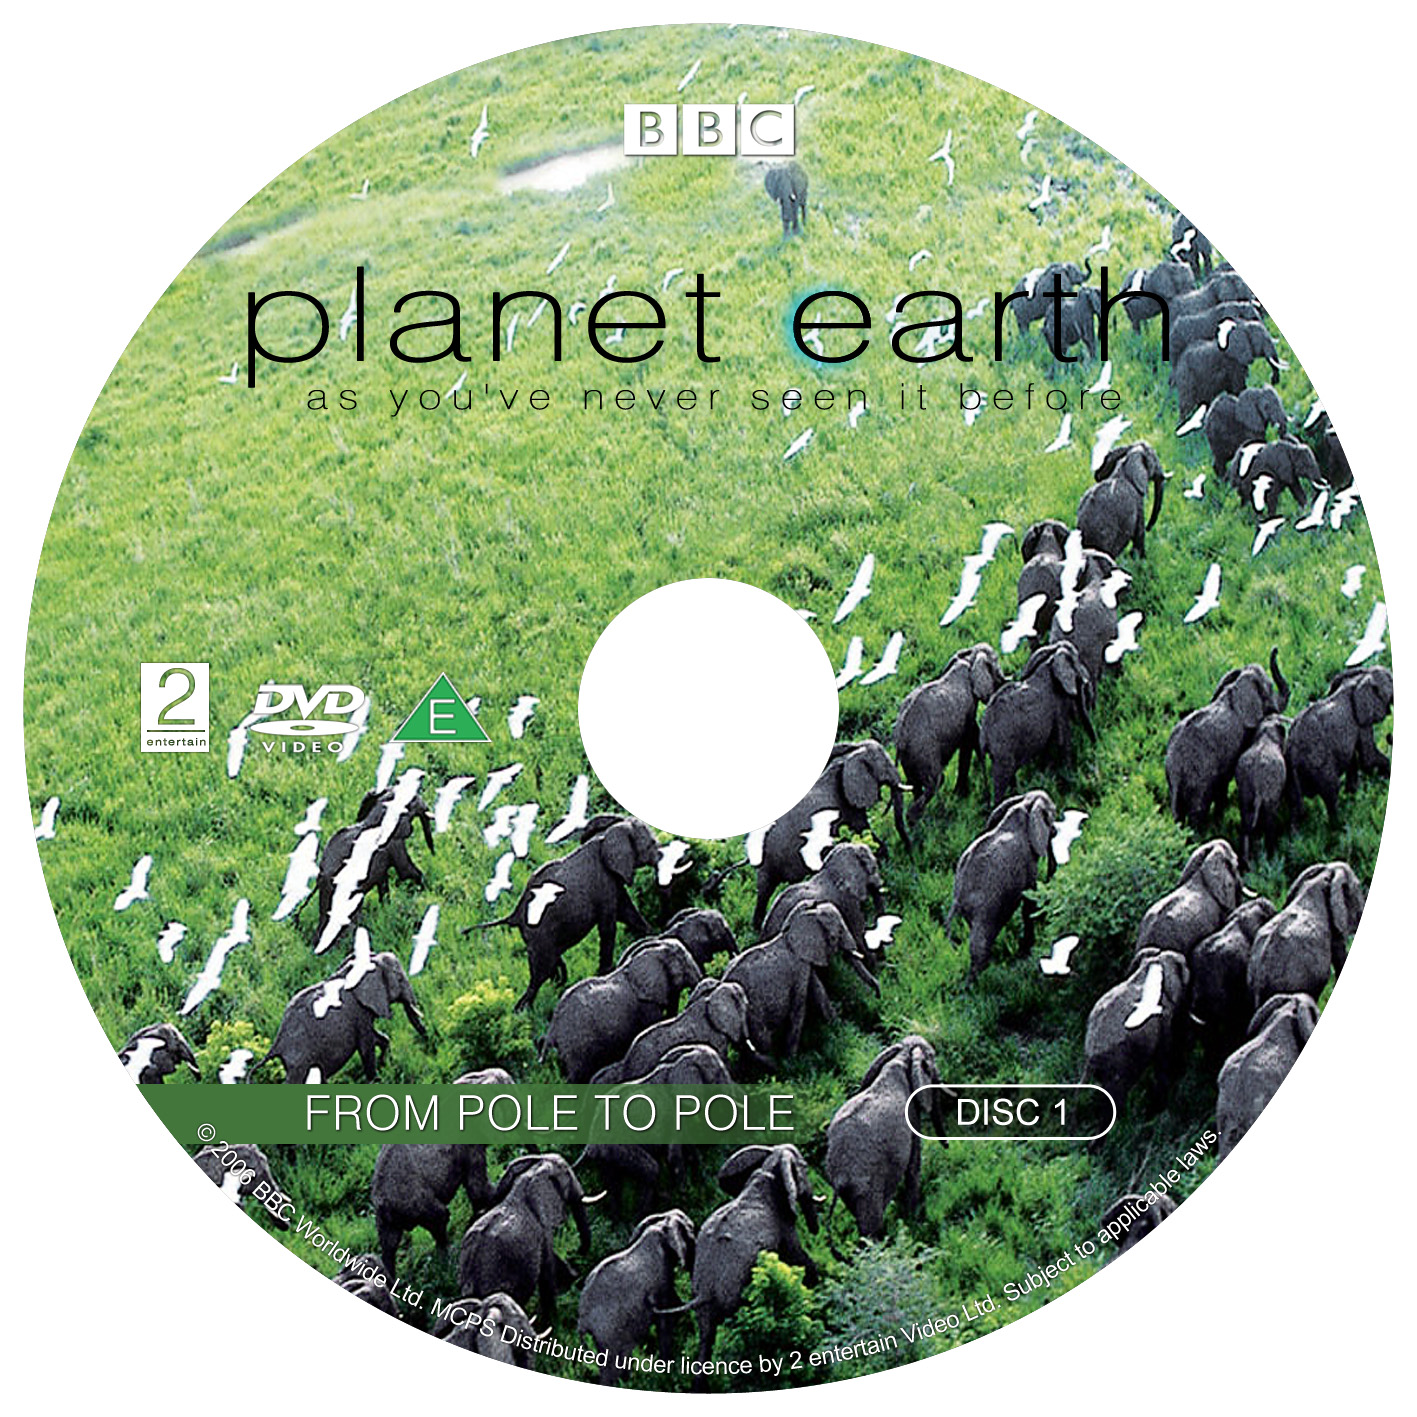 worksheet Planet Earth Pole To Pole Worksheet planet earth pole to worksheet abitlikethis sk bbc 1 from pole